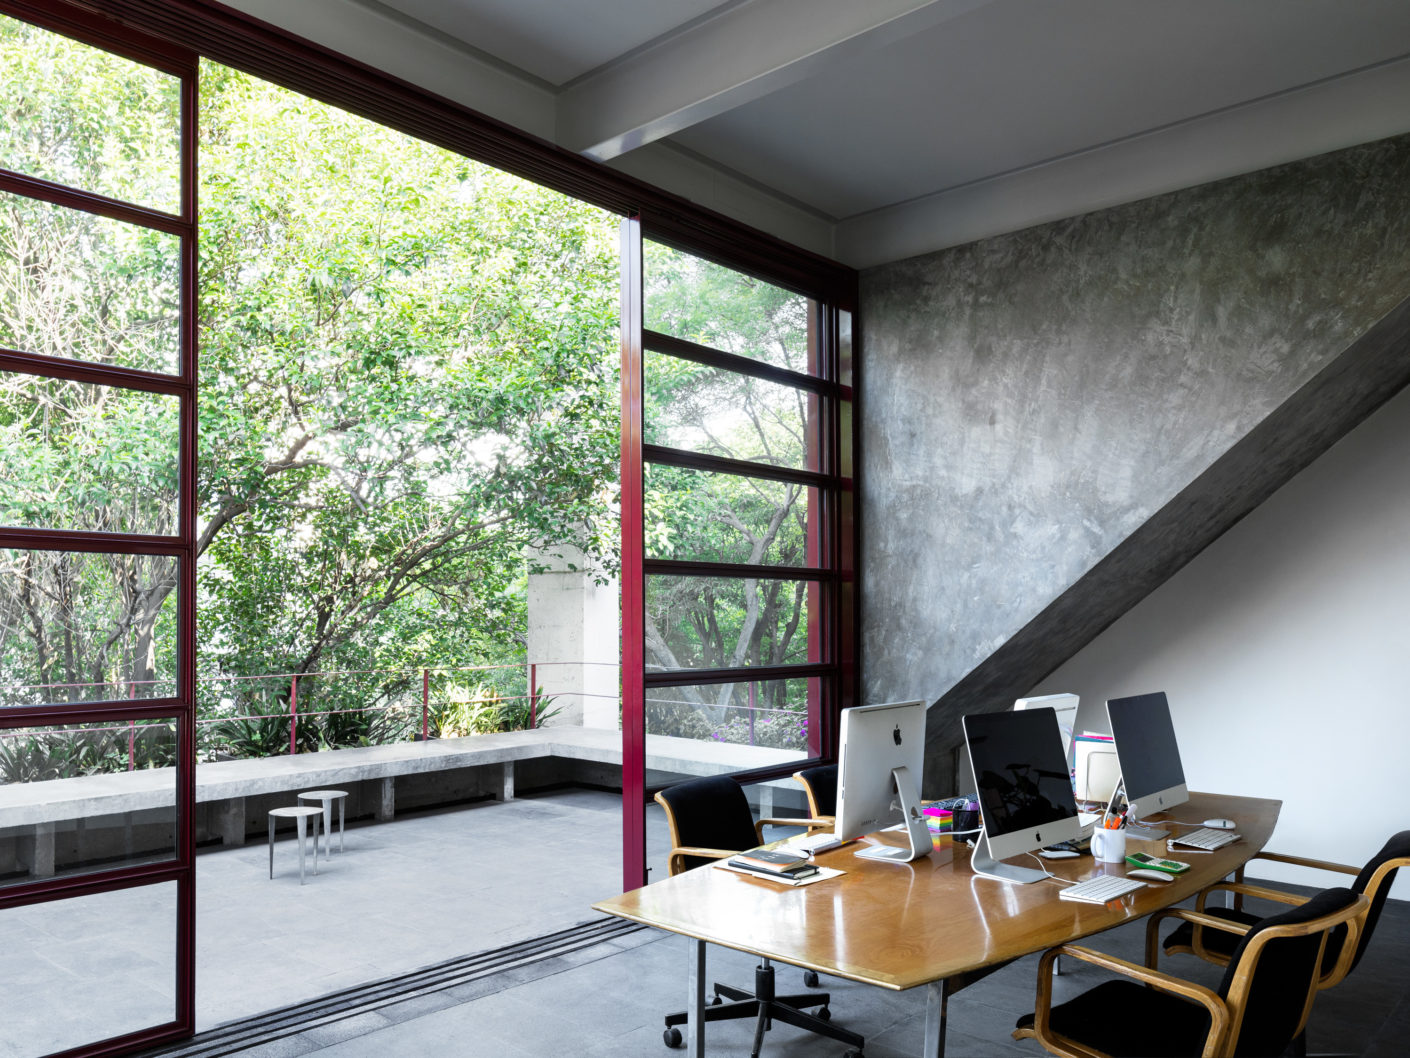 Galeria OMR Mexico City Office